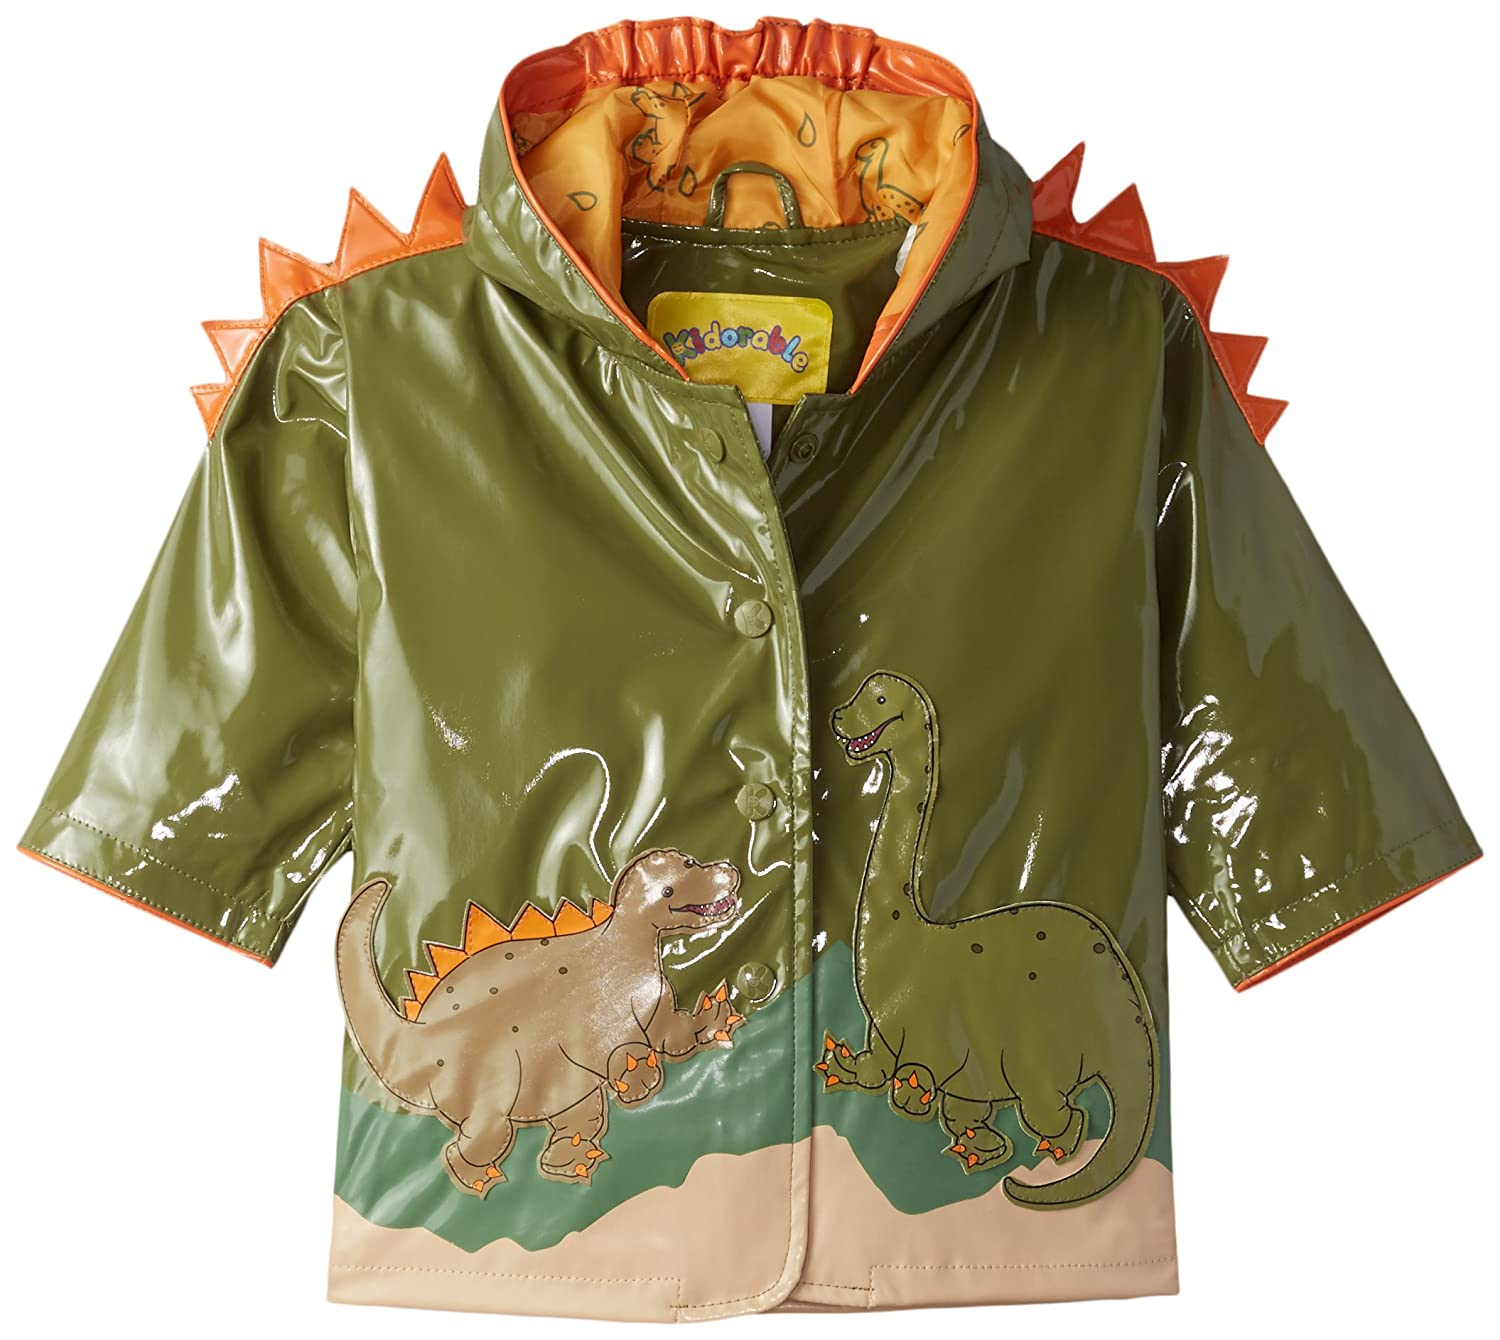 Kidorable Green Dinosaur PU All-Weather Raincoat for Boys With Fun Dino Spikes and Volcano Kidorable- Quarterdeck 393029